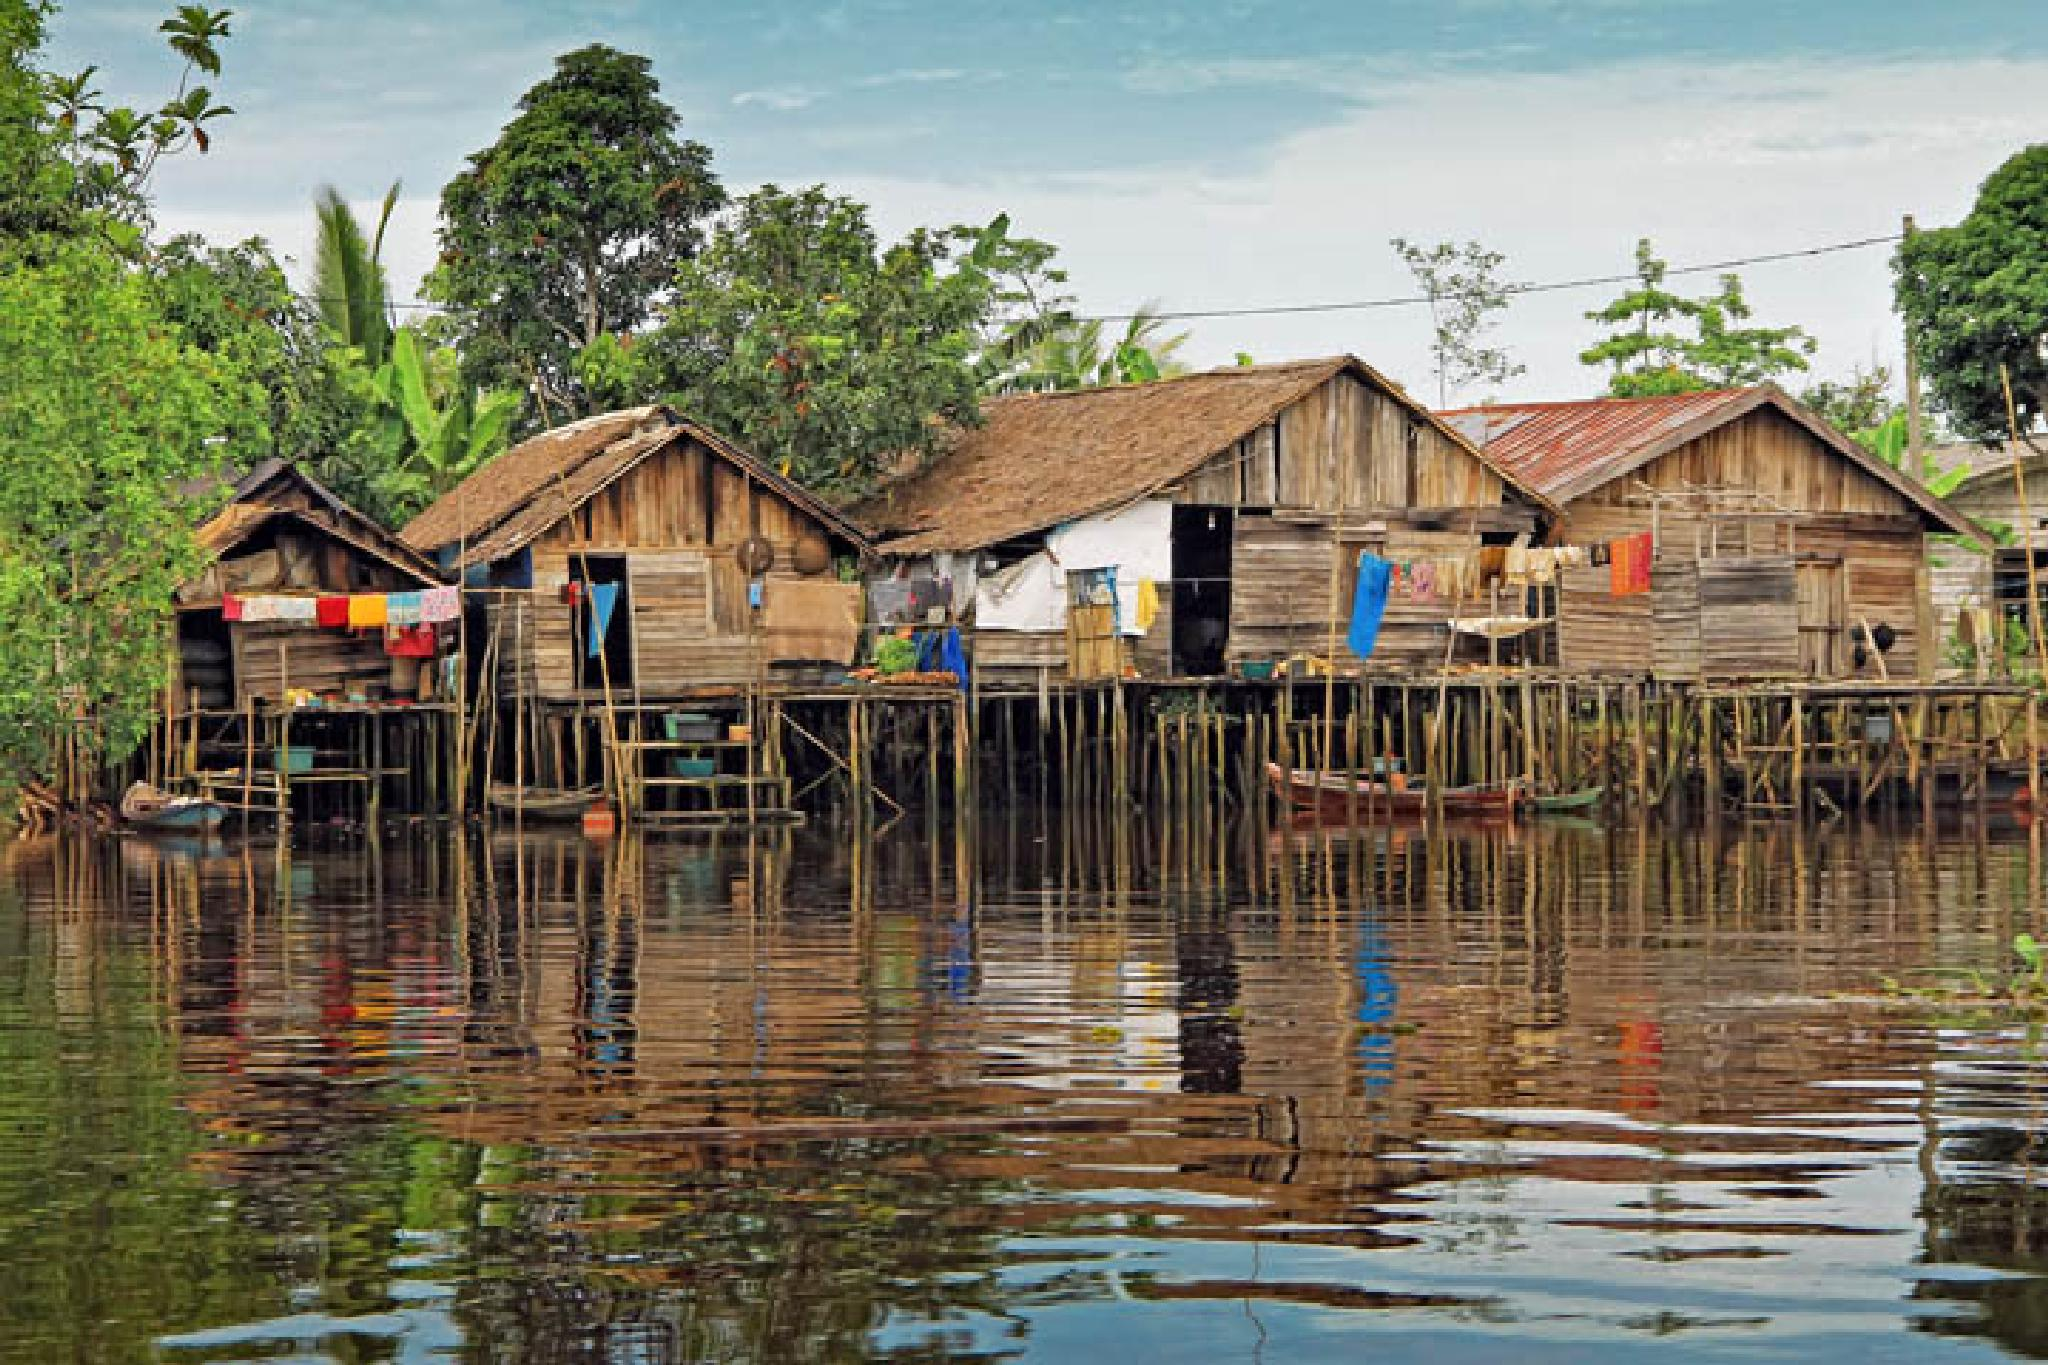 riverside settlements by Trisno Apidianto